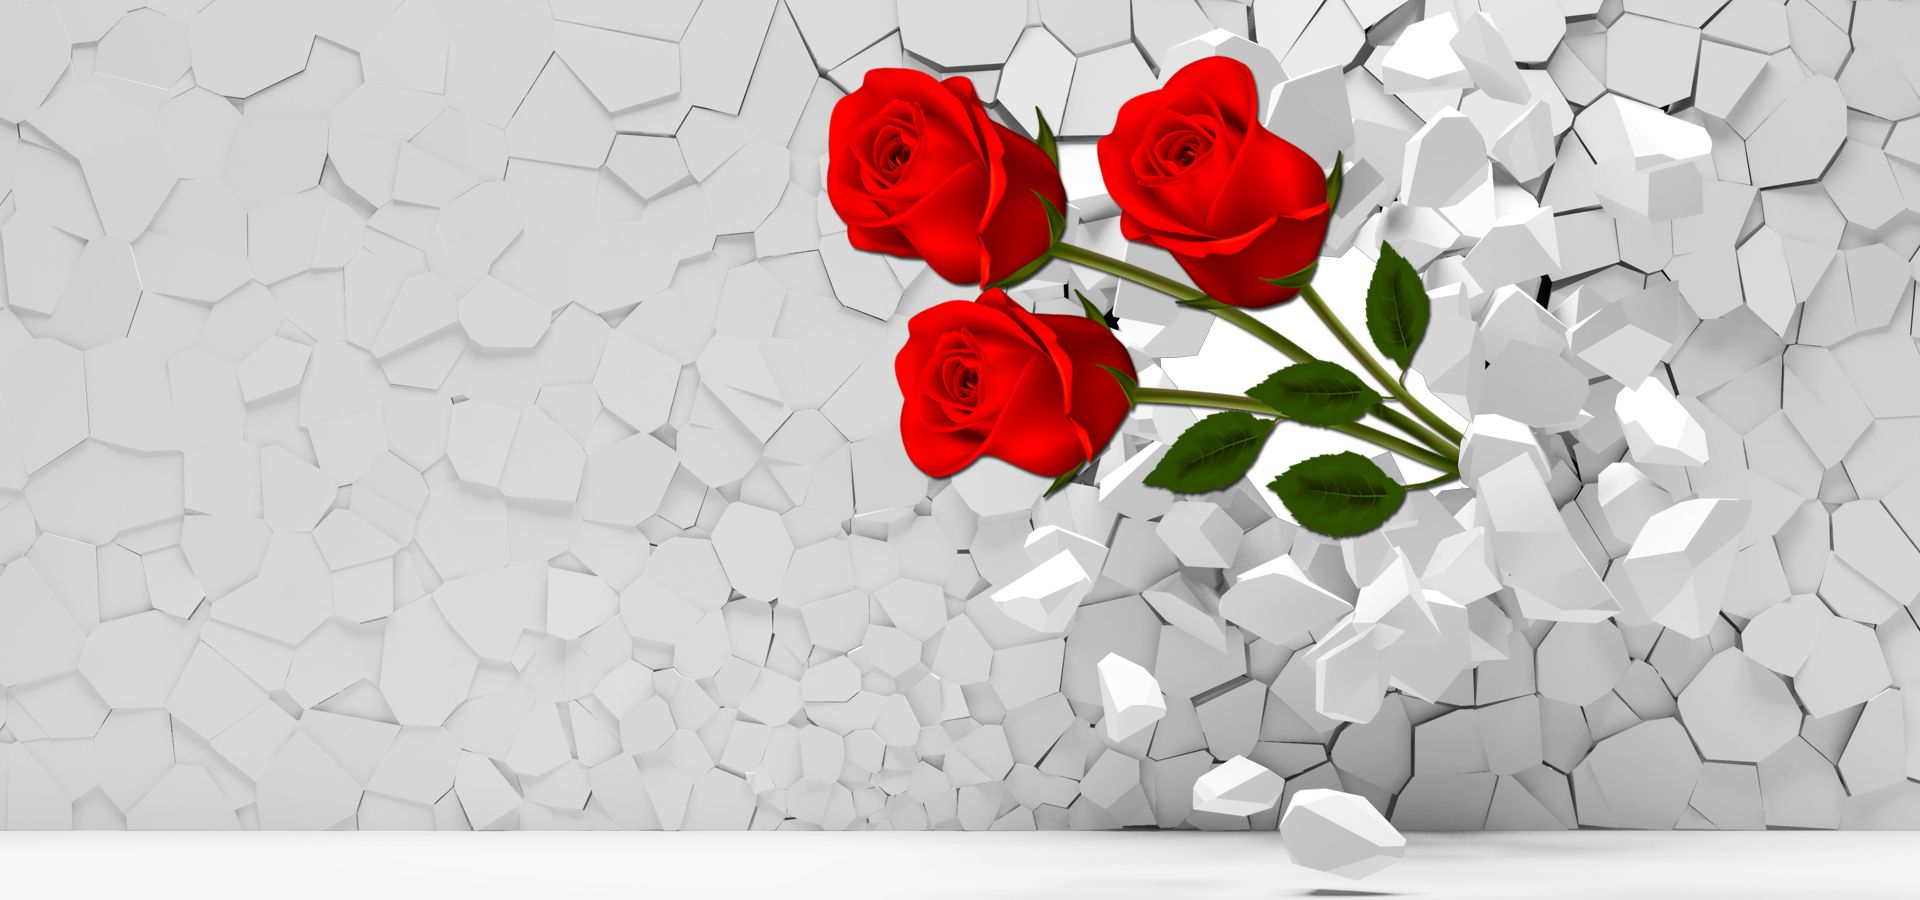 3d Roses Background In 2020 Flower Pattern Design Flower